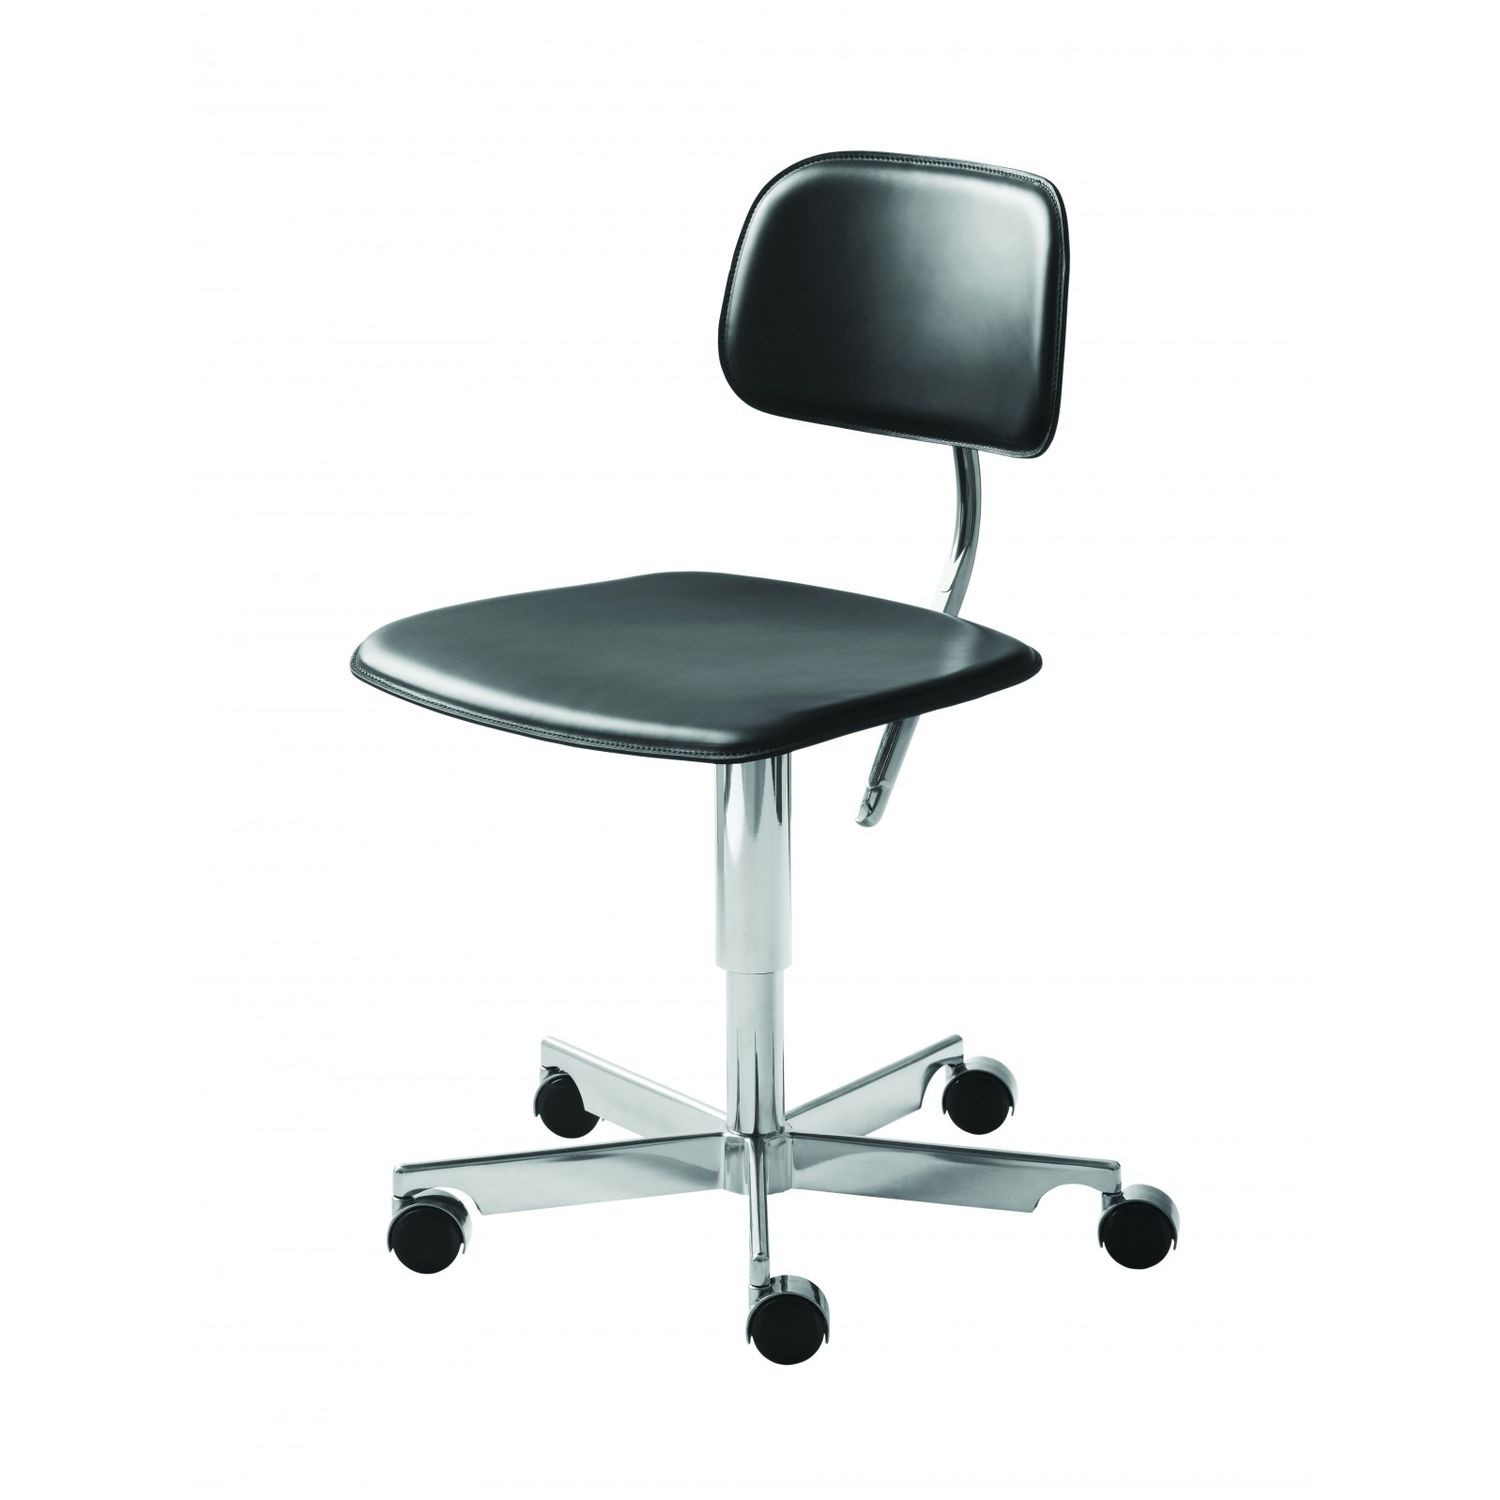 Kevi Chair Aluminum Task Chair Leather Swivel Upholstered Kevi 2050